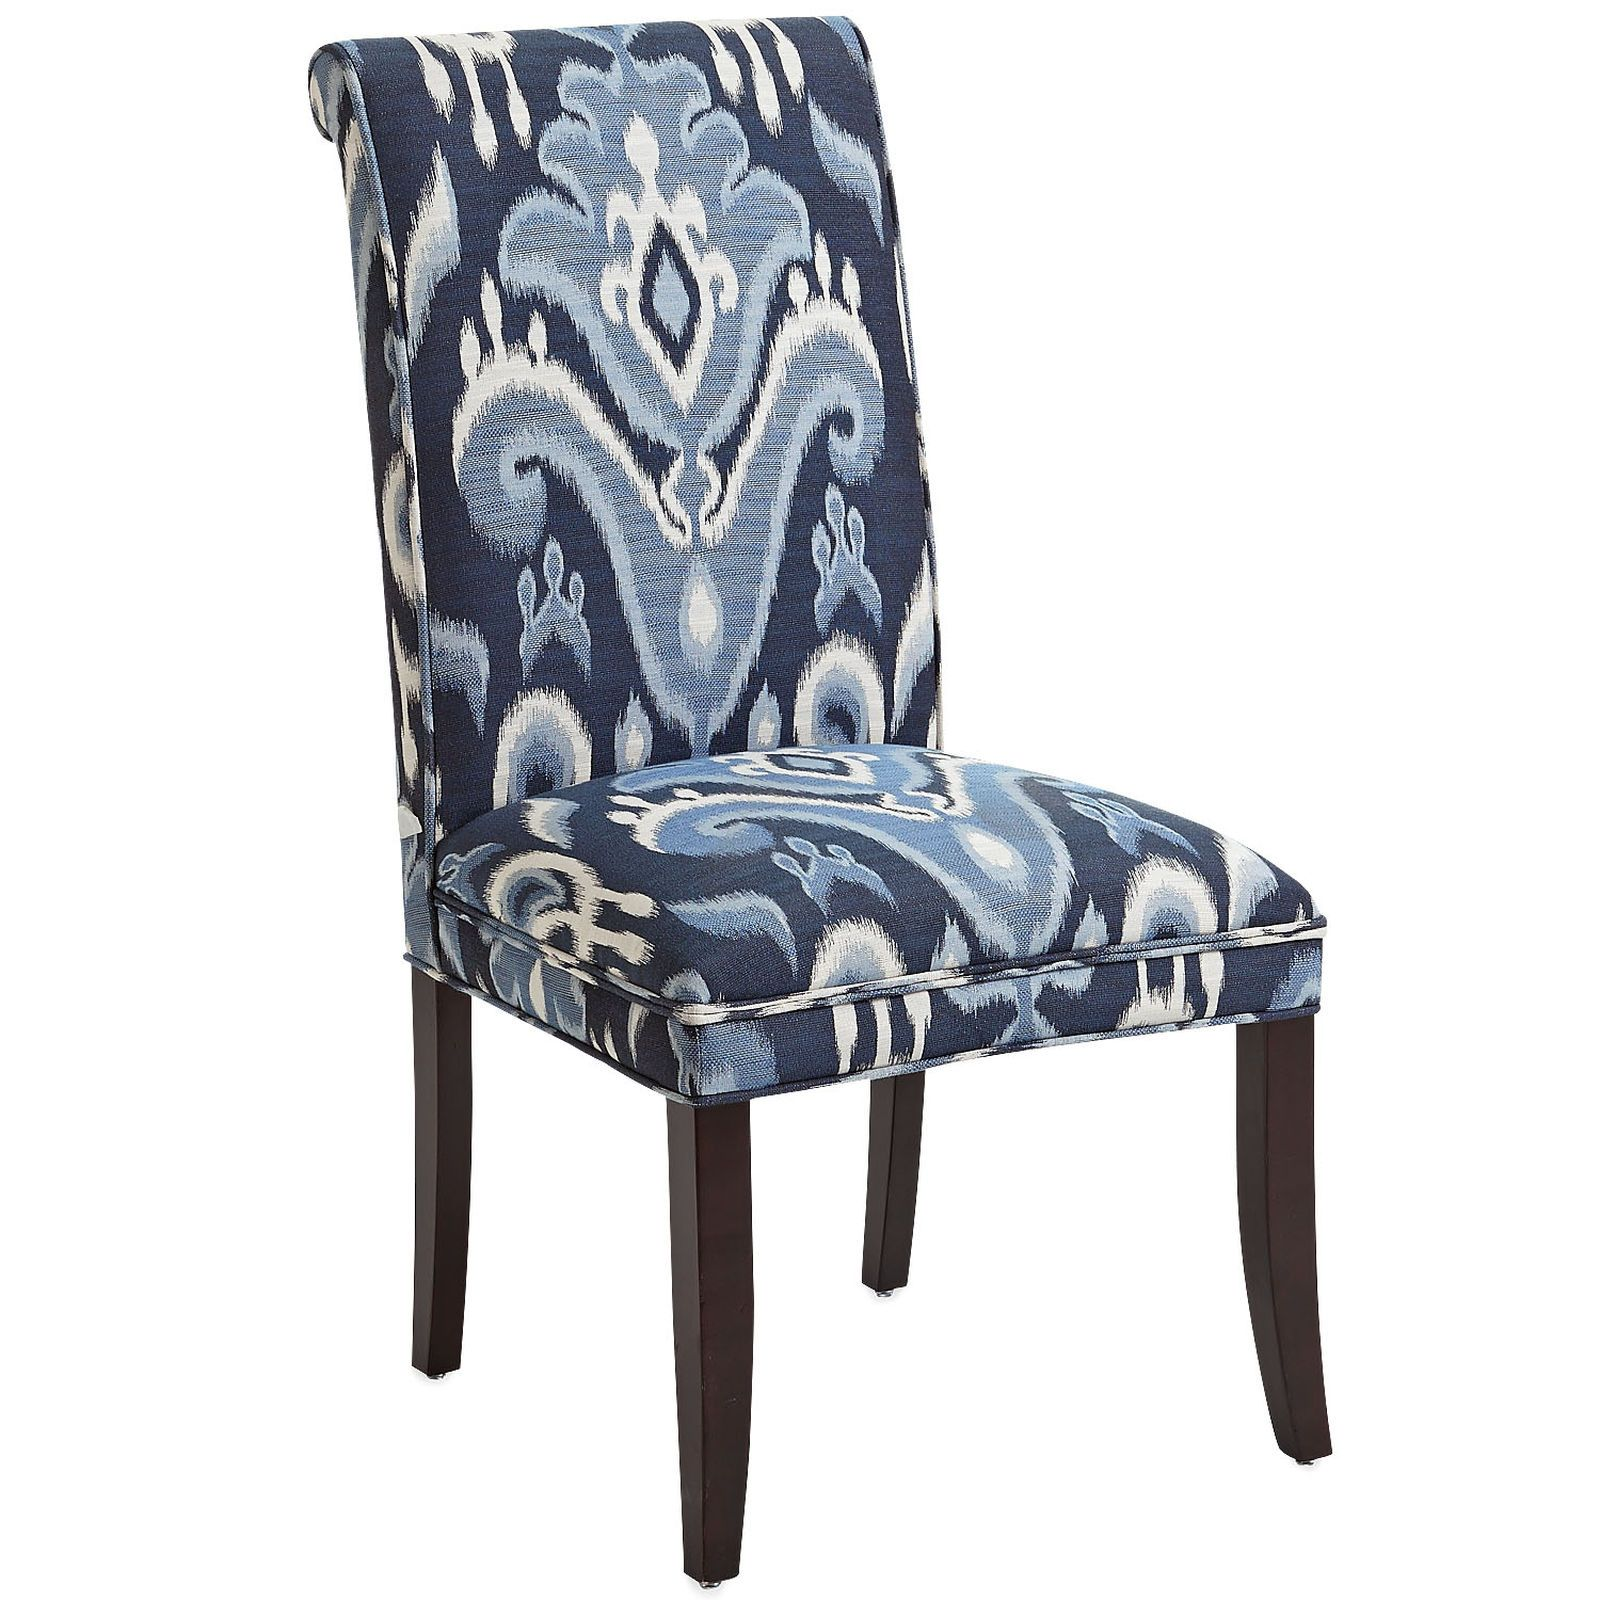 Hand upholstered in durable polyester with a traditional